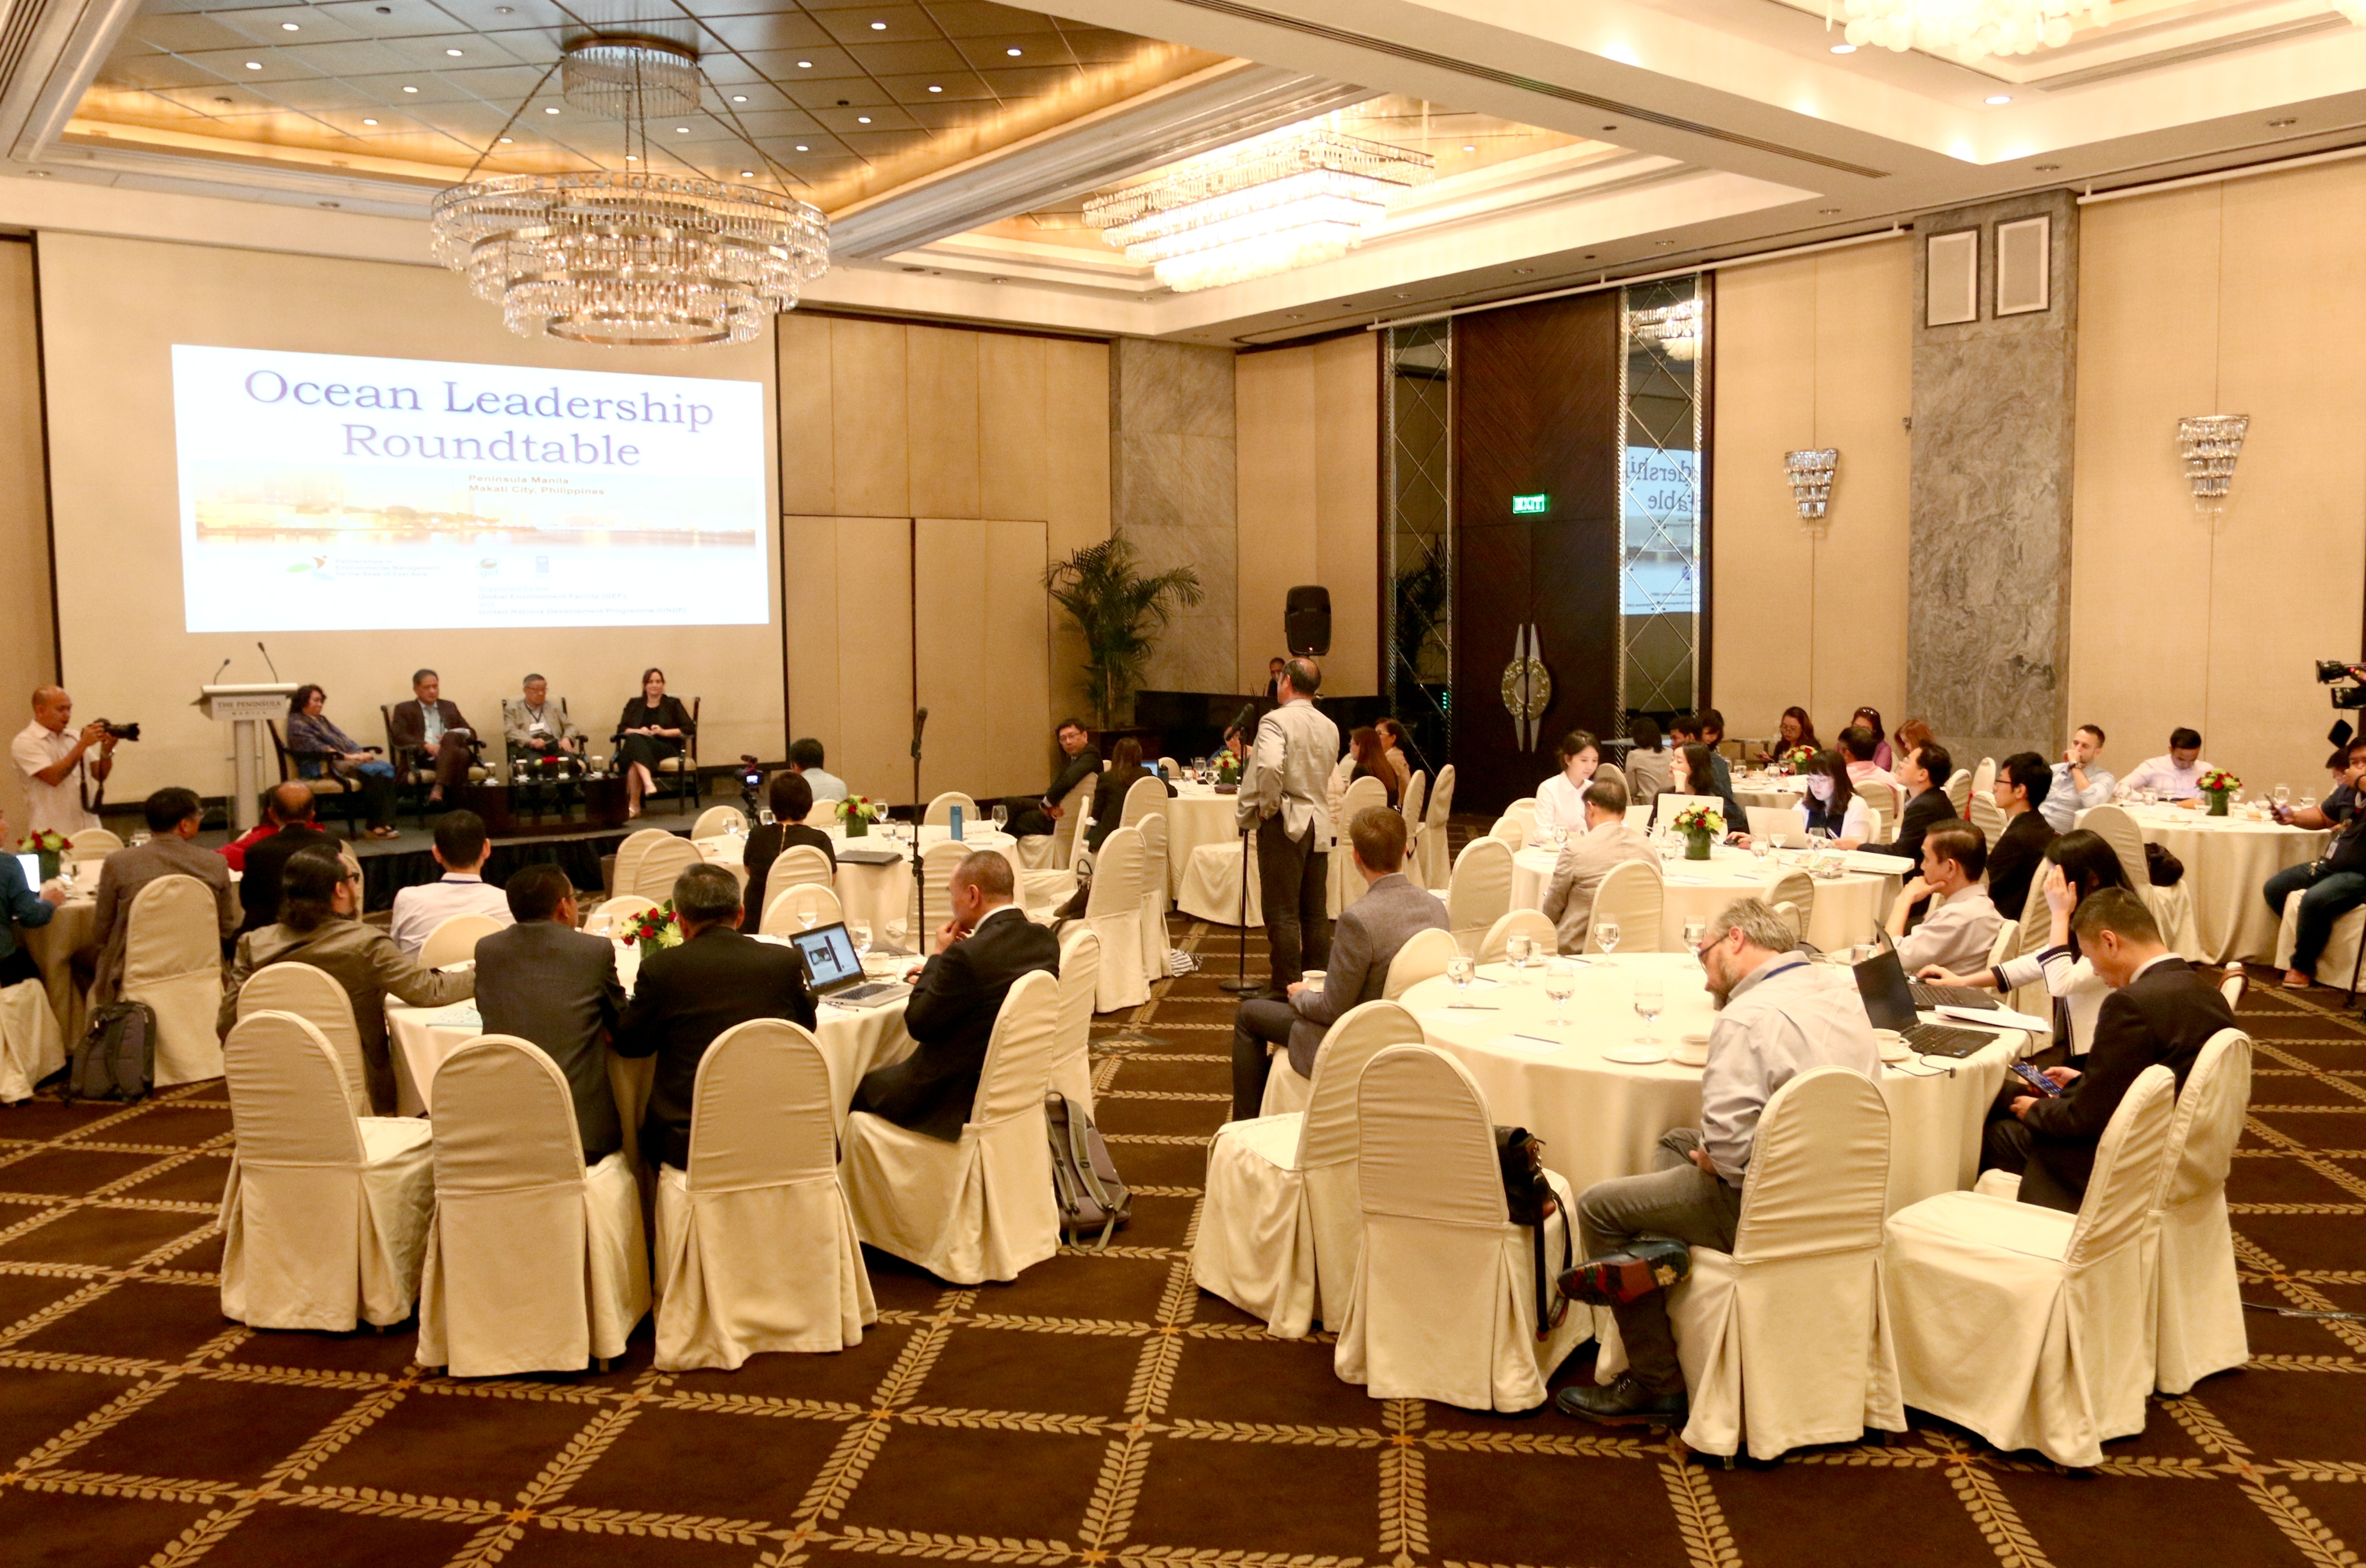 The audience of the Ocean Leadership Roundtable Dialogue